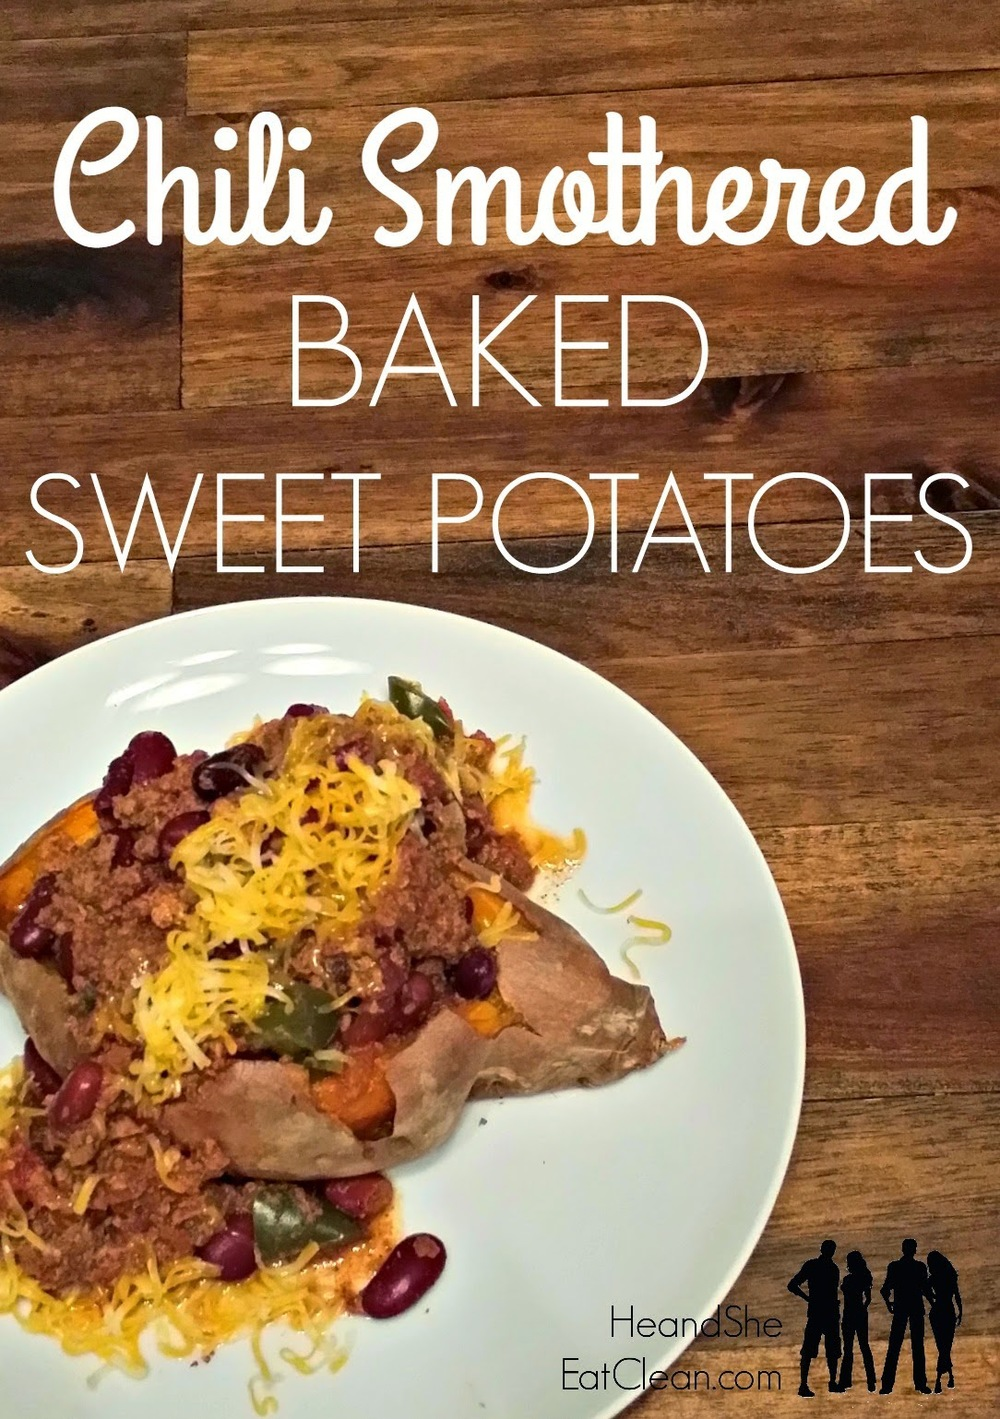 Chili_Smothered_Baked_Sweet_Potatoes_Dinner_Meal_Comfort_Food_Loaded_Potato_He_She_Eat_Clean.jpg